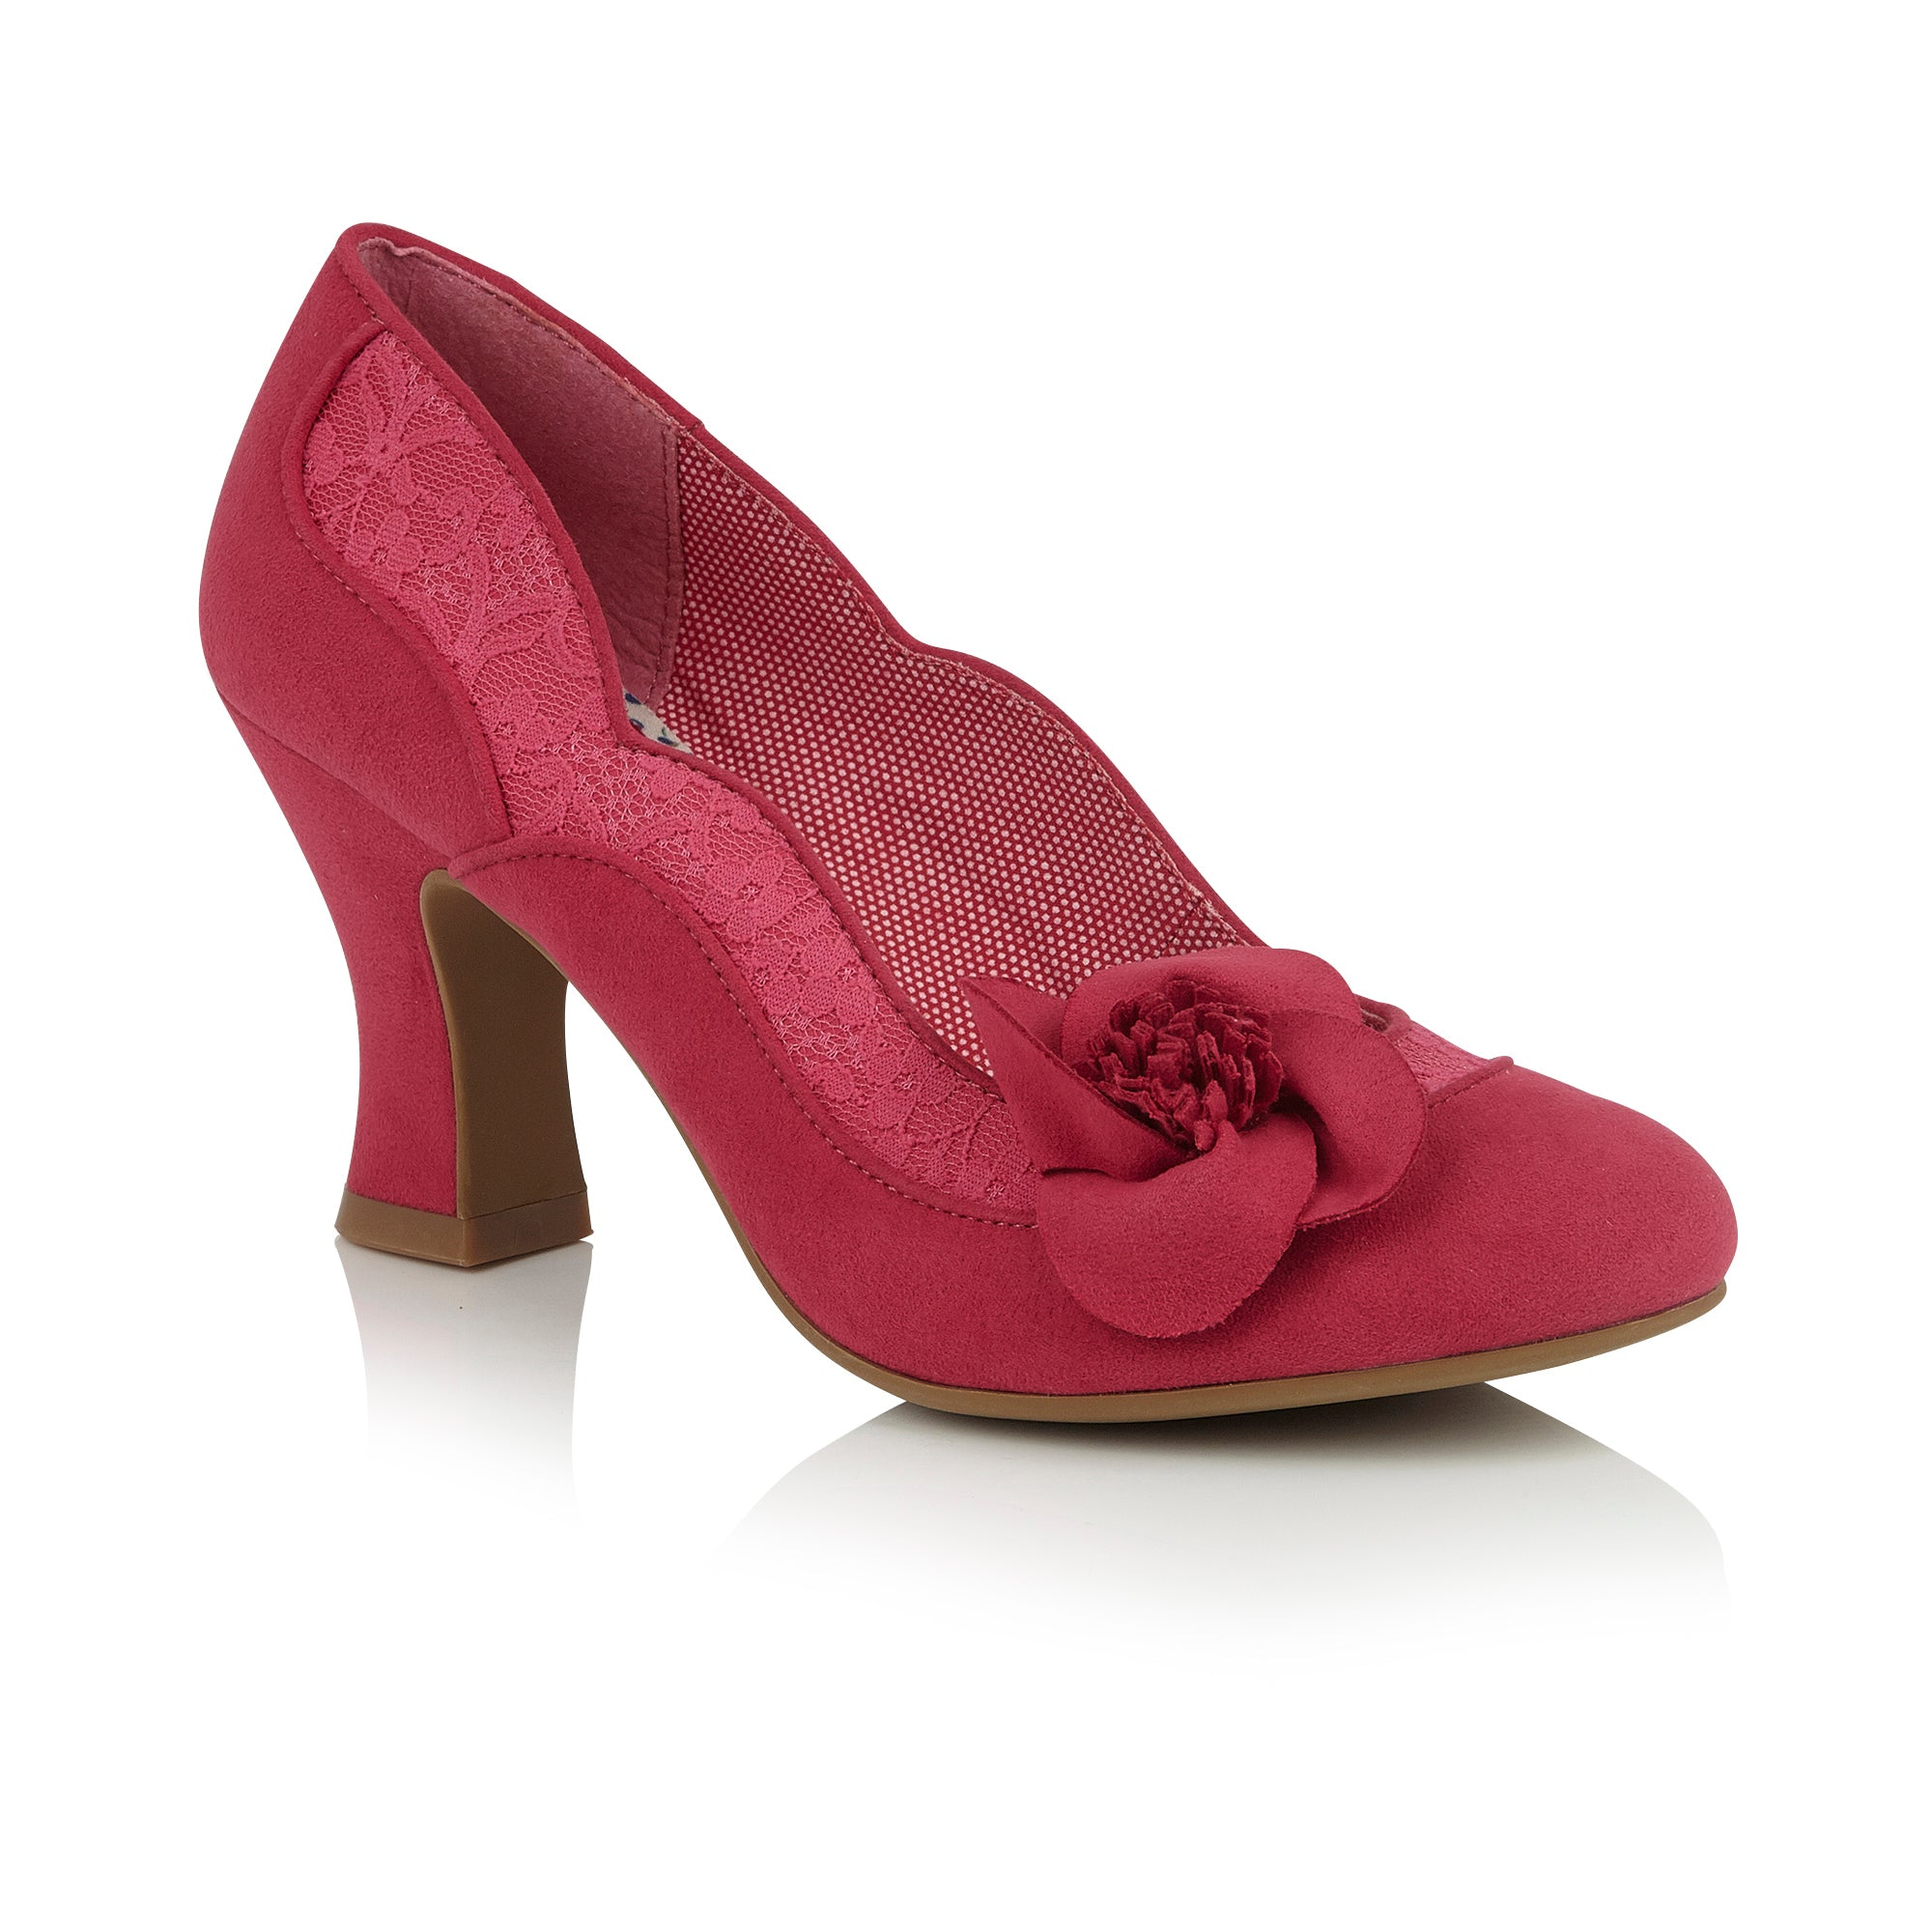 ebbc438fa5a95 Ruby Shoo Fuchsia Heeled Corsage Veronica Court Shoes